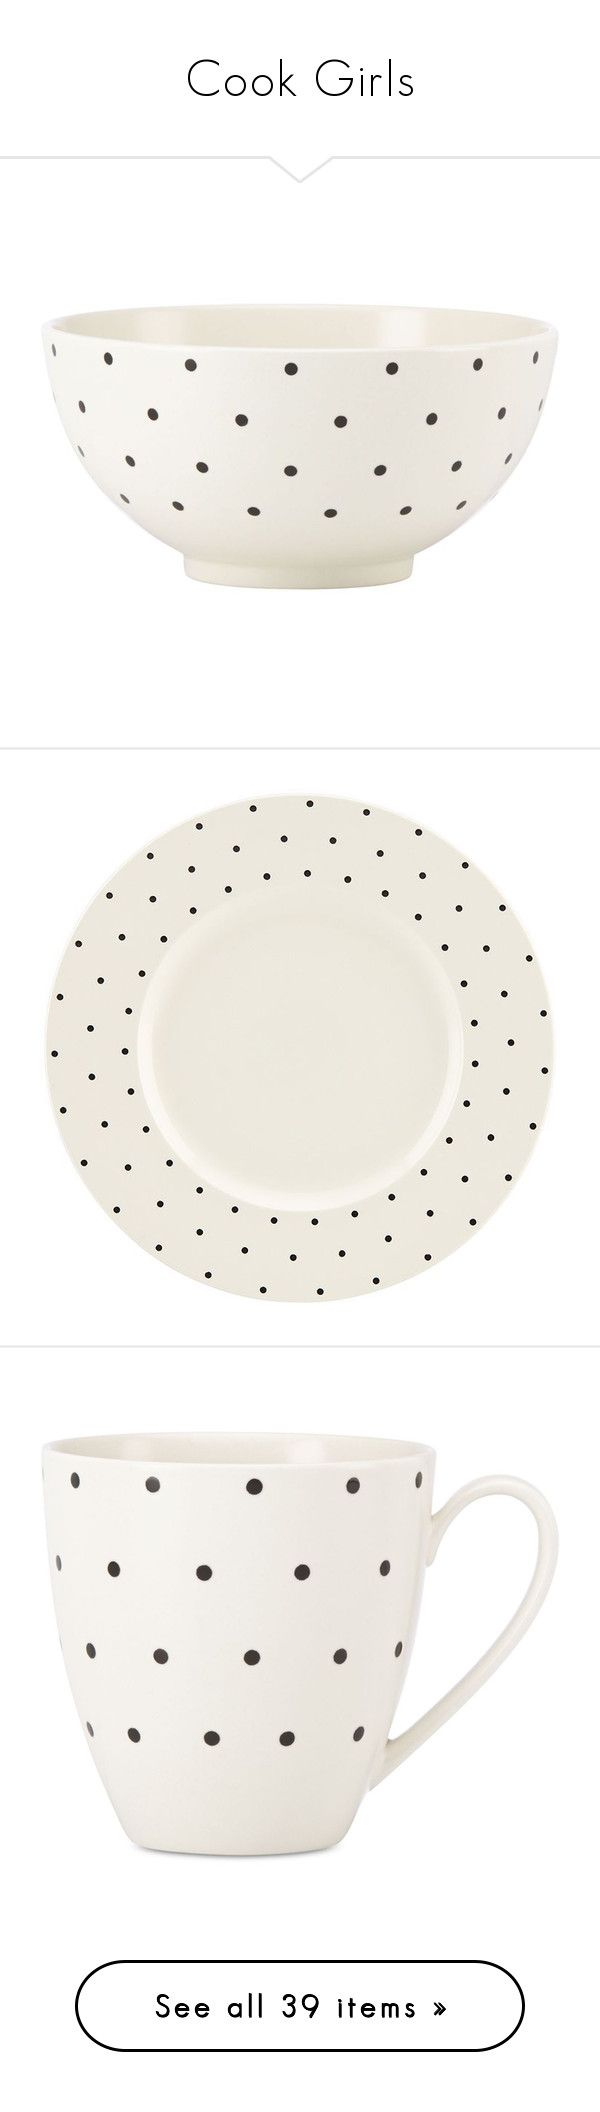 """""""Cook Girls"""" by suellenborinhoran ❤ liked on Polyvore featuring home, kitchen & dining, dinnerware, kate spade dinnerware, polka dot dinnerware, dot dinnerware, kate spade, stoneware dinnerware, cream dinnerware and polka dot dinner plates"""